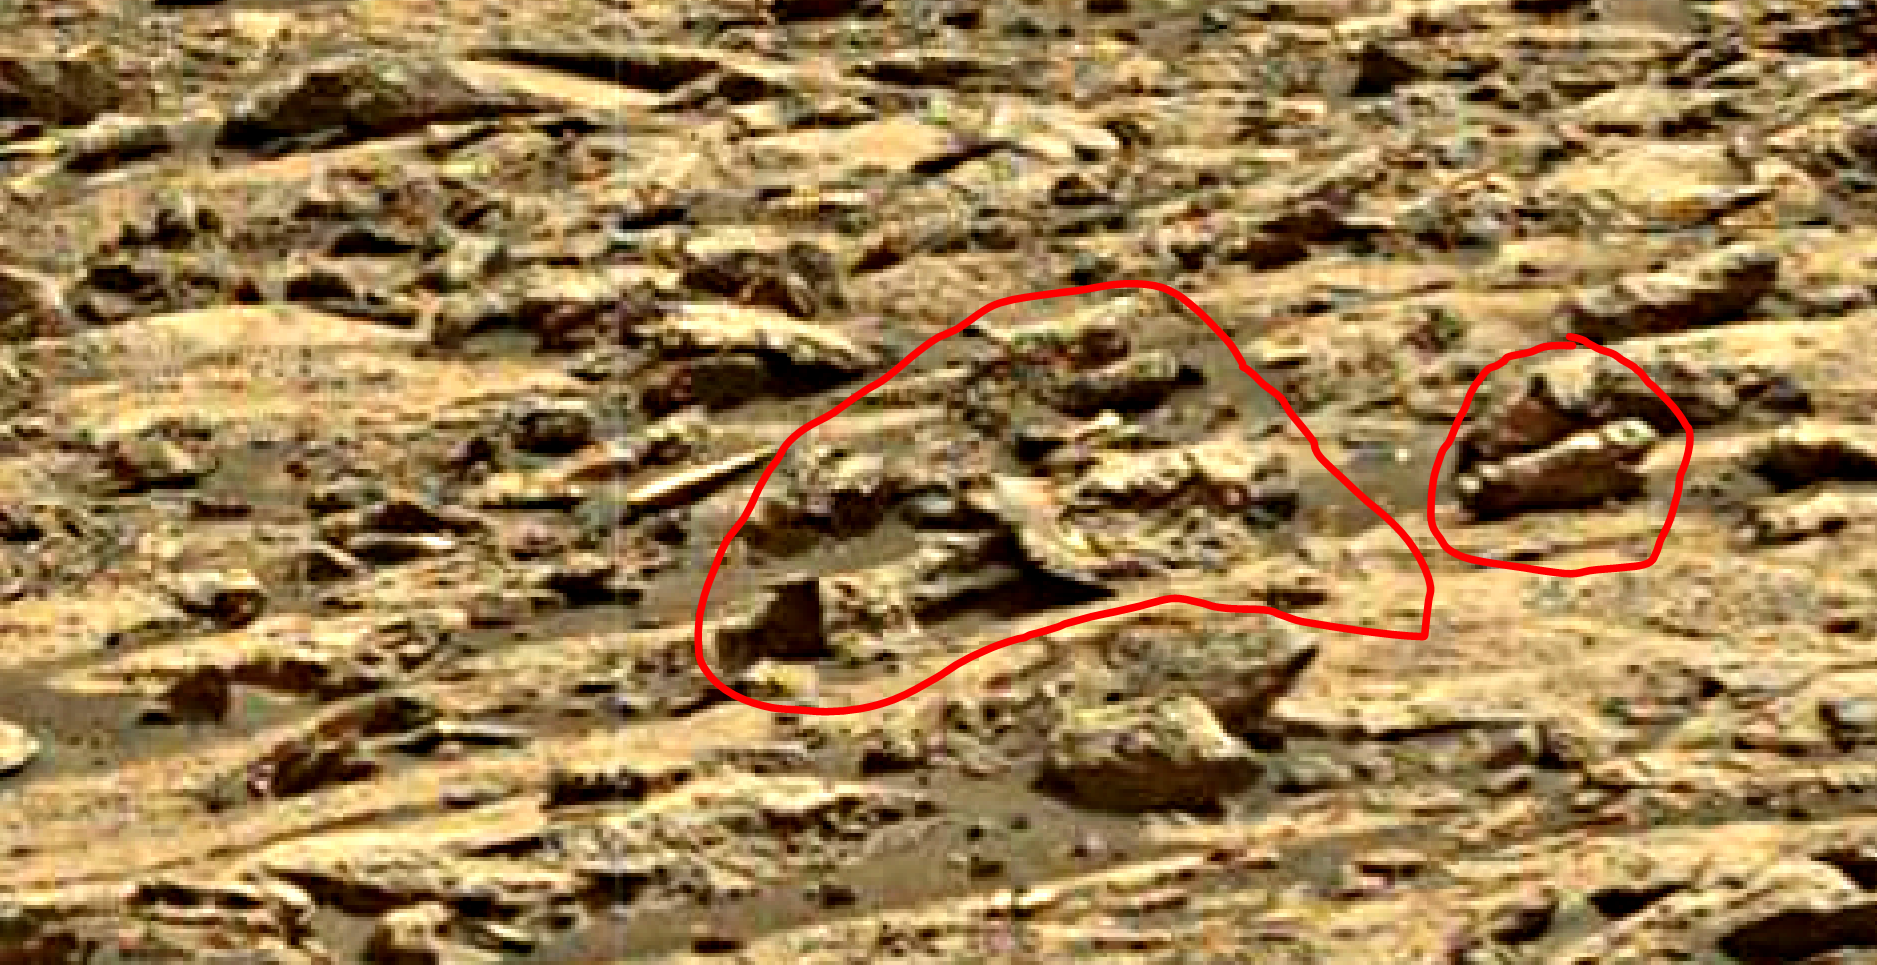 mars-sol-1452-anomaly-artifacts-4a-was-life-on-mars